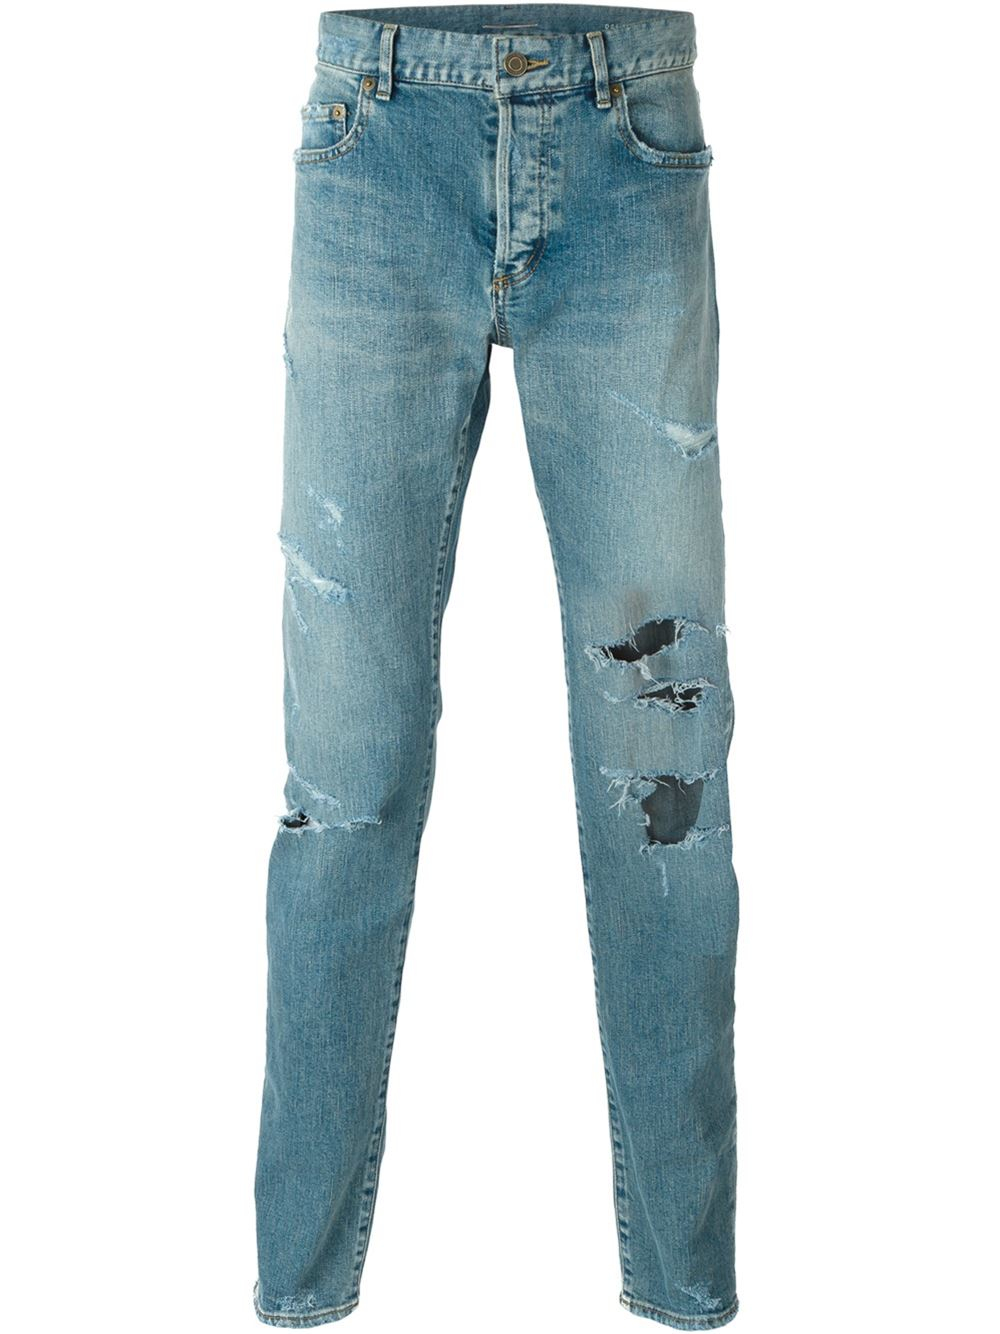 lyst saint laurent distressed slim jeans in blue for men. Black Bedroom Furniture Sets. Home Design Ideas